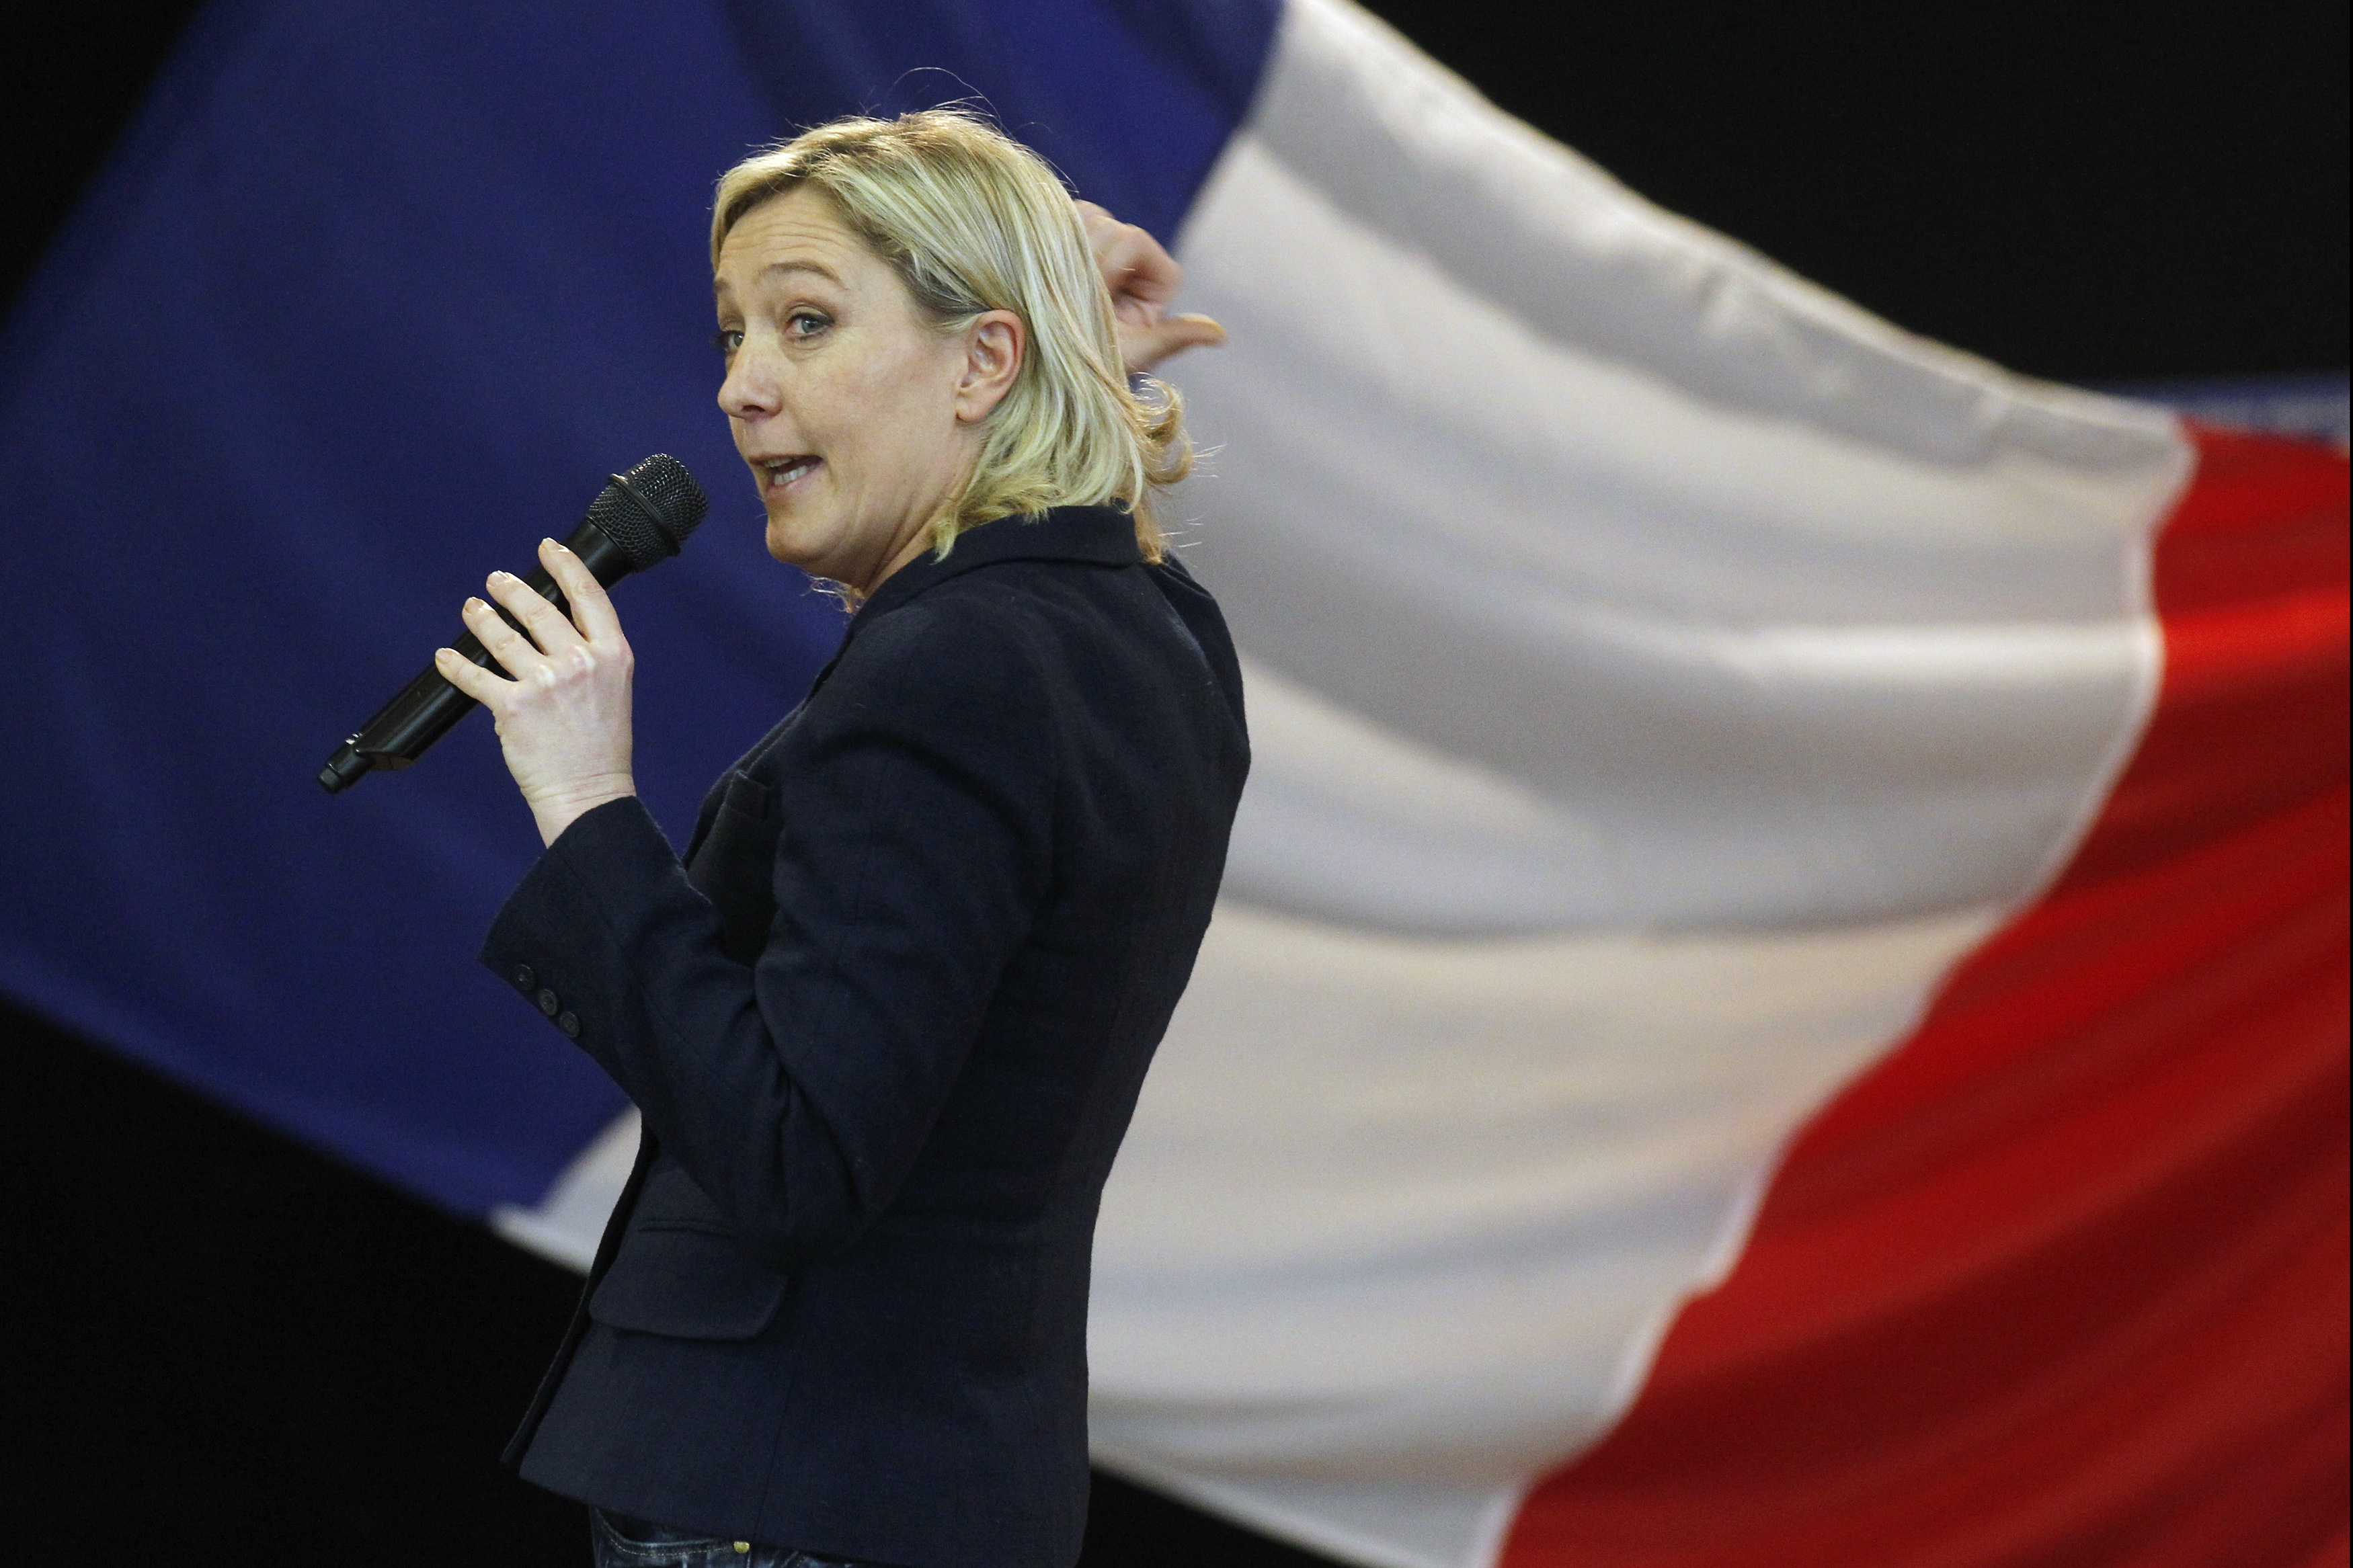 Marine Le Pen, France's far-right National Front political party vice-president and European deputy, speaks in Beaumont